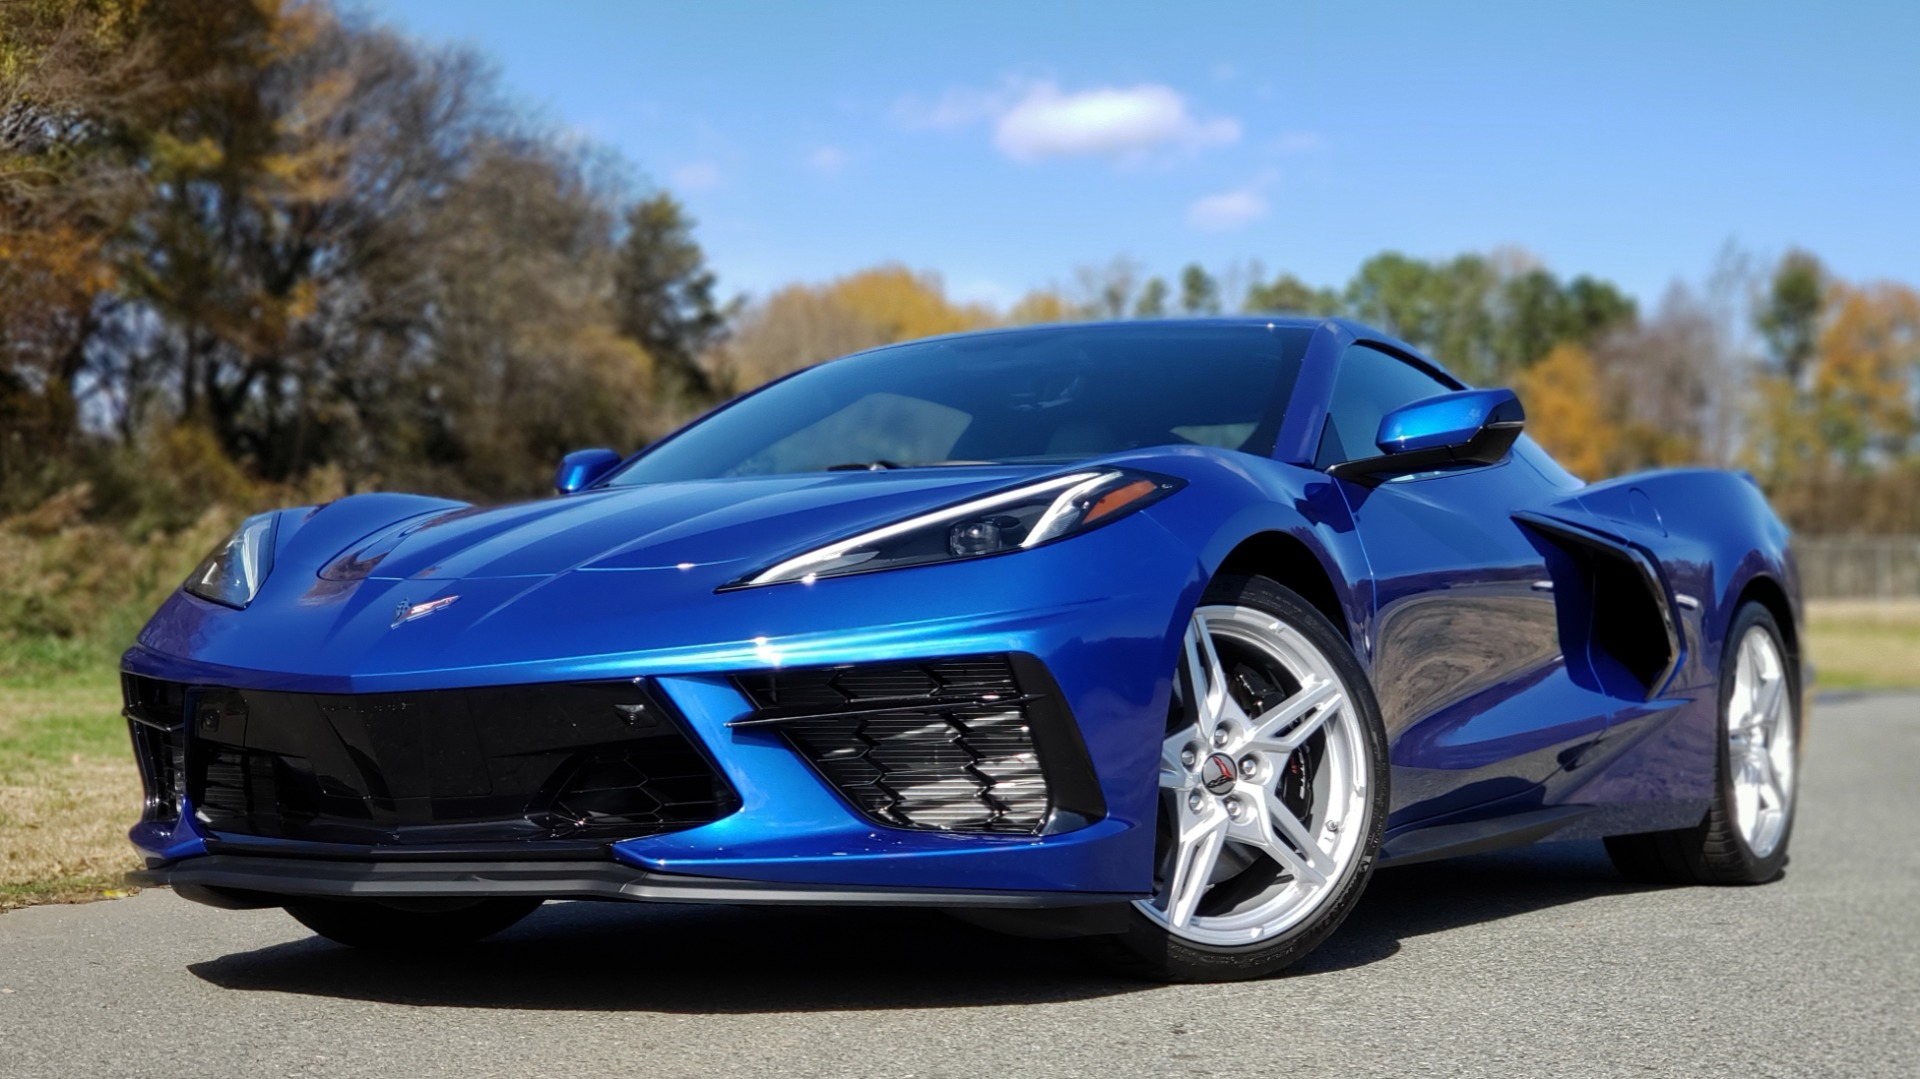 Used 2020 Chevrolet C8 CORVETTE STINGRAY 2LT COUPE / NAV / HUD / BOSE / GT2 SEATS / FRONT LIFT / REARVIEW for sale $98,999 at Formula Imports in Charlotte NC 28227 2